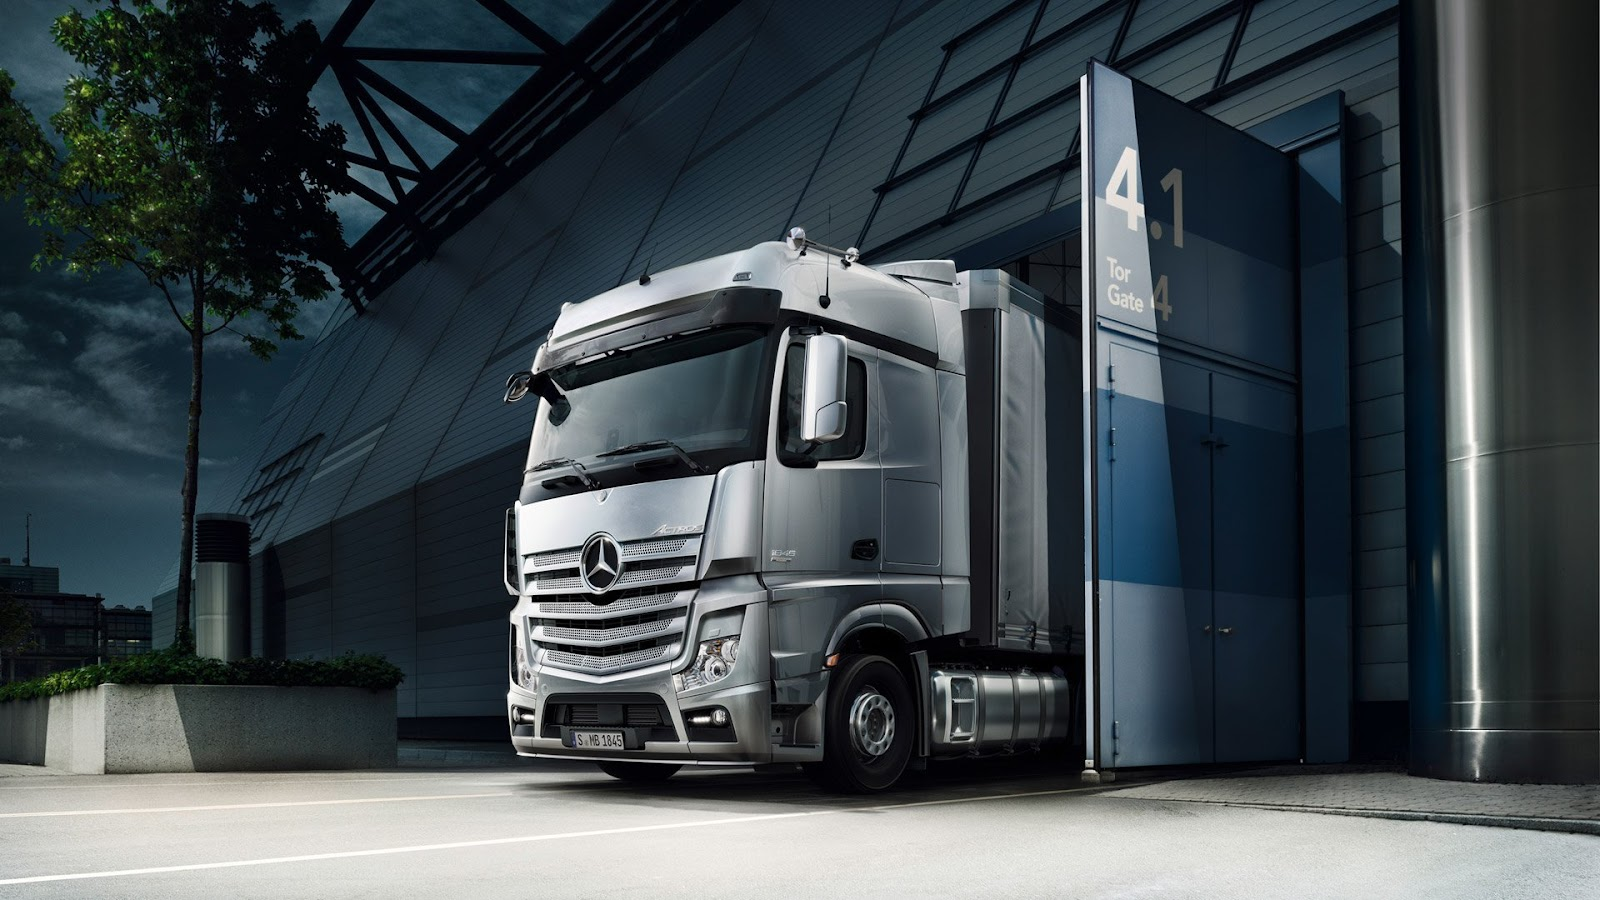 4k Truck Wallpapers High Quality Download Free Total Update